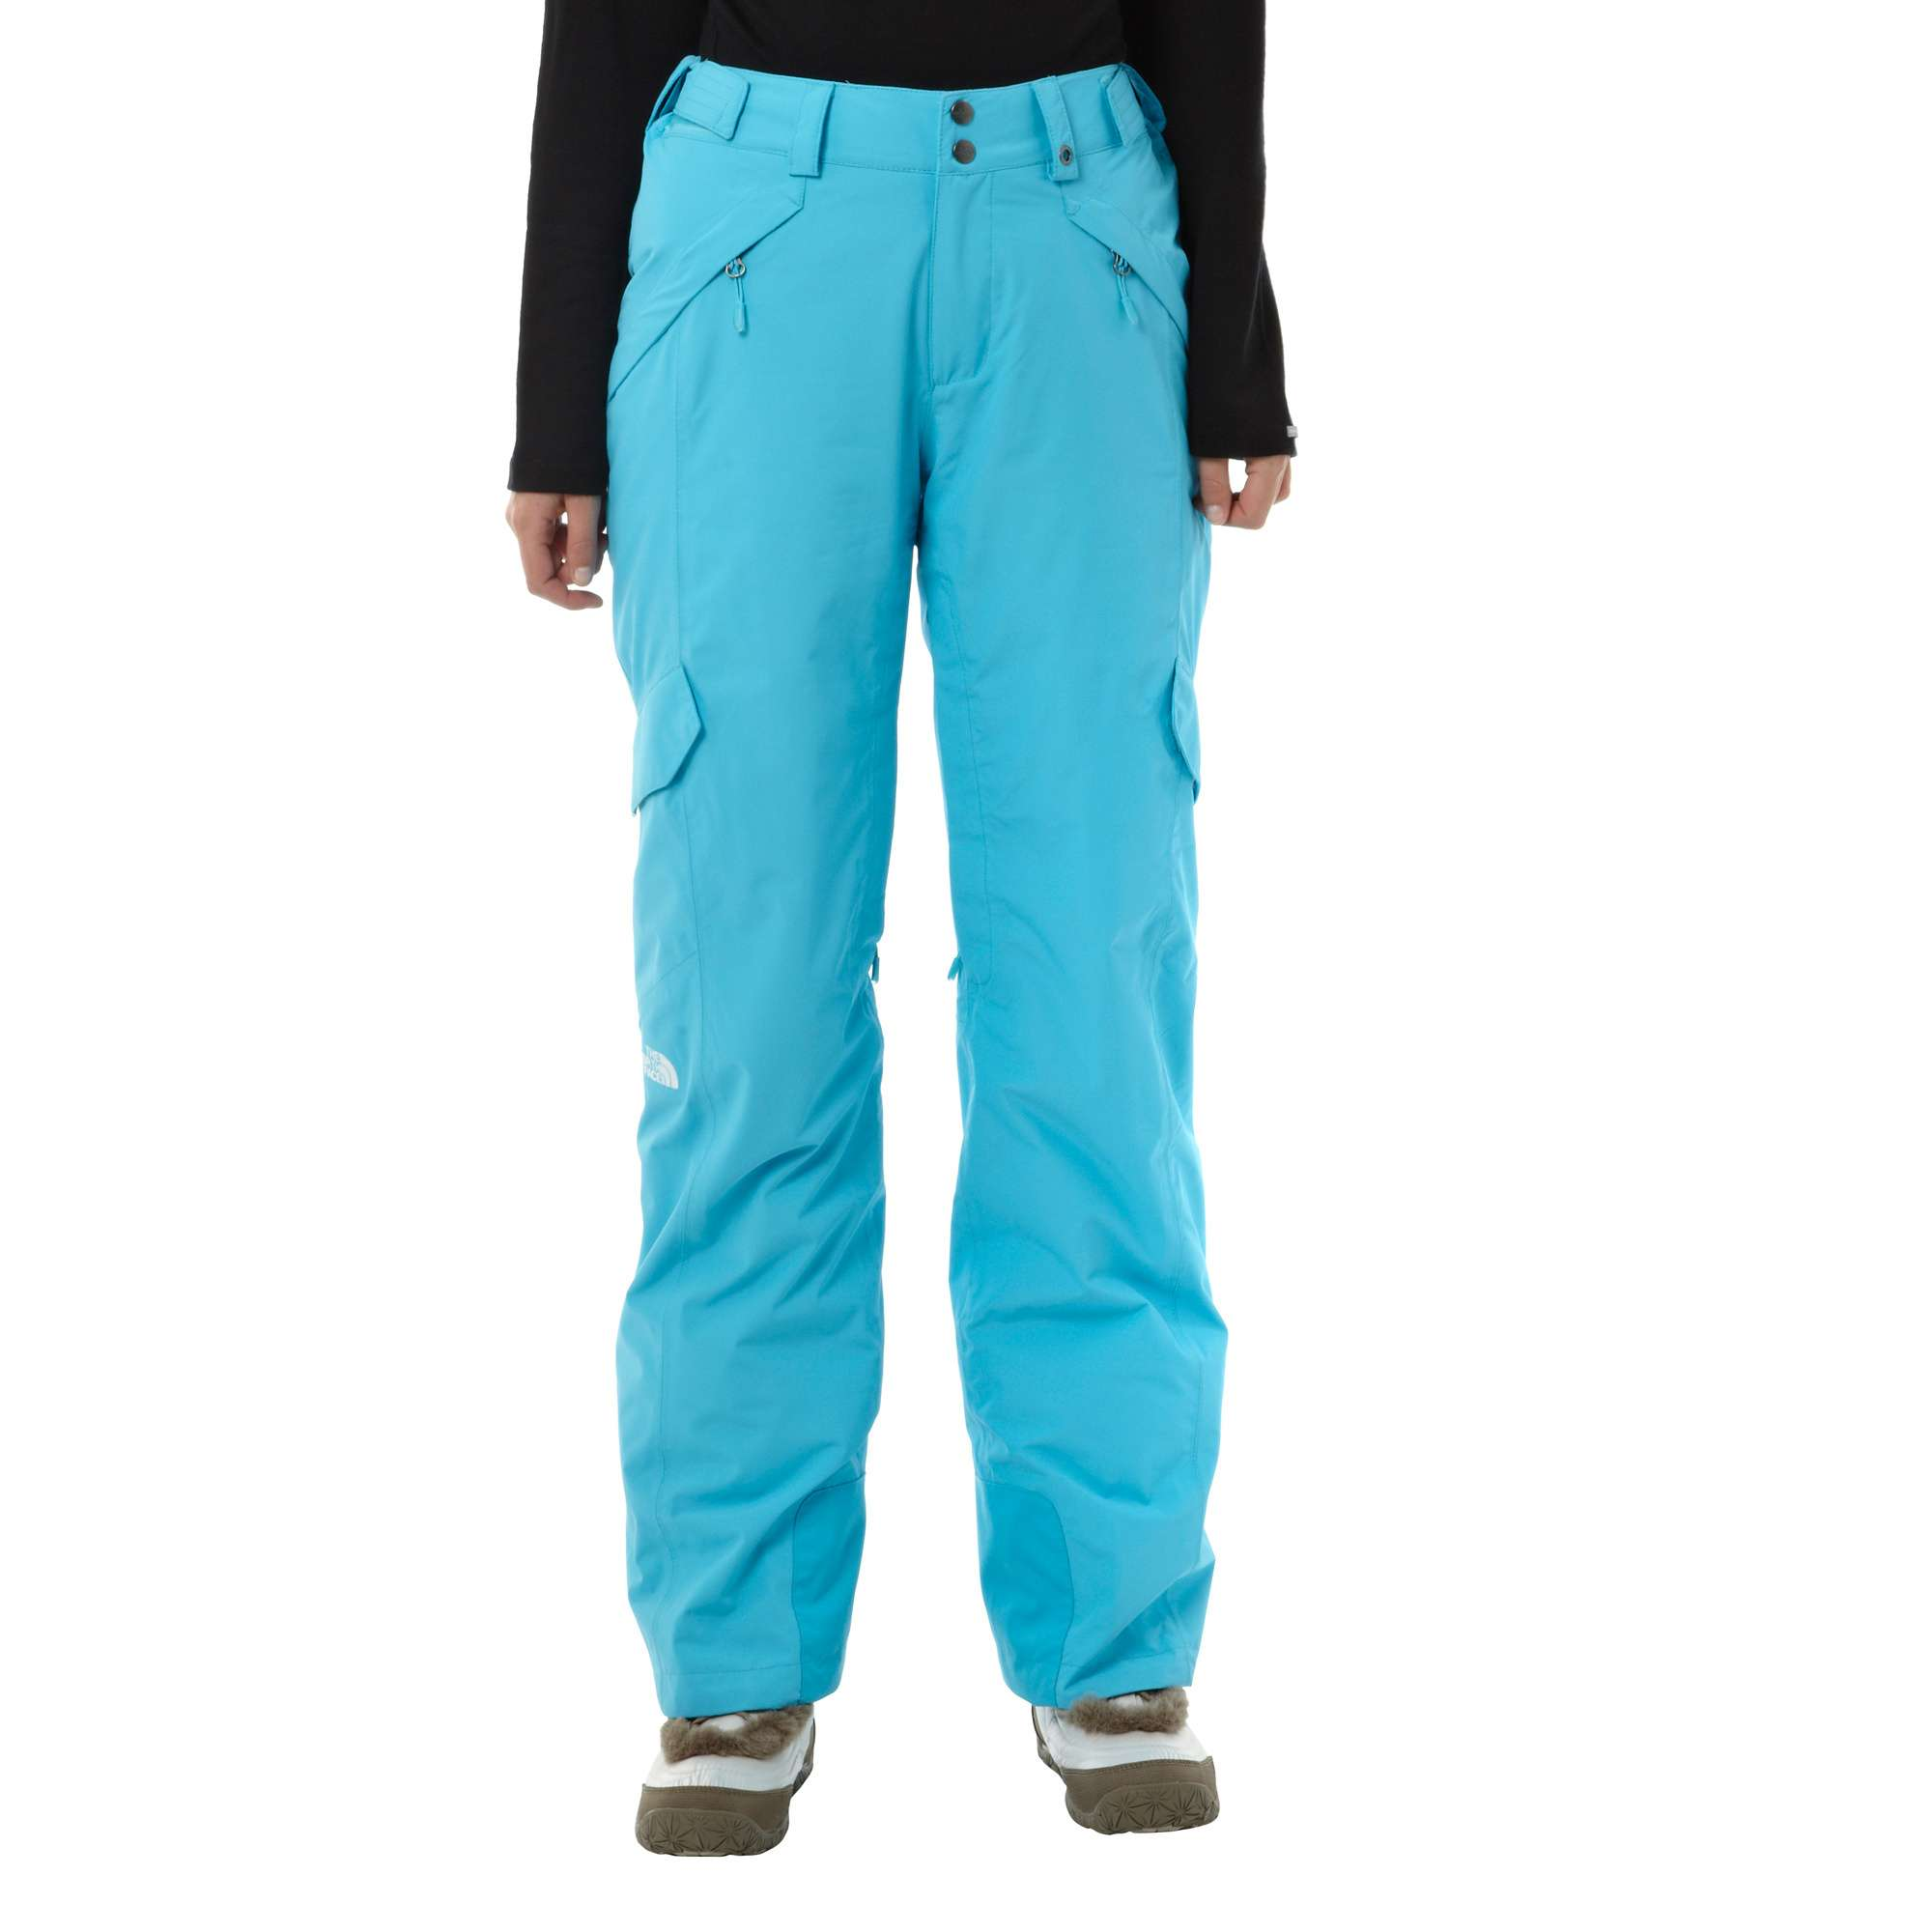 THE NORTH FACE Women's Keely Ski Pants